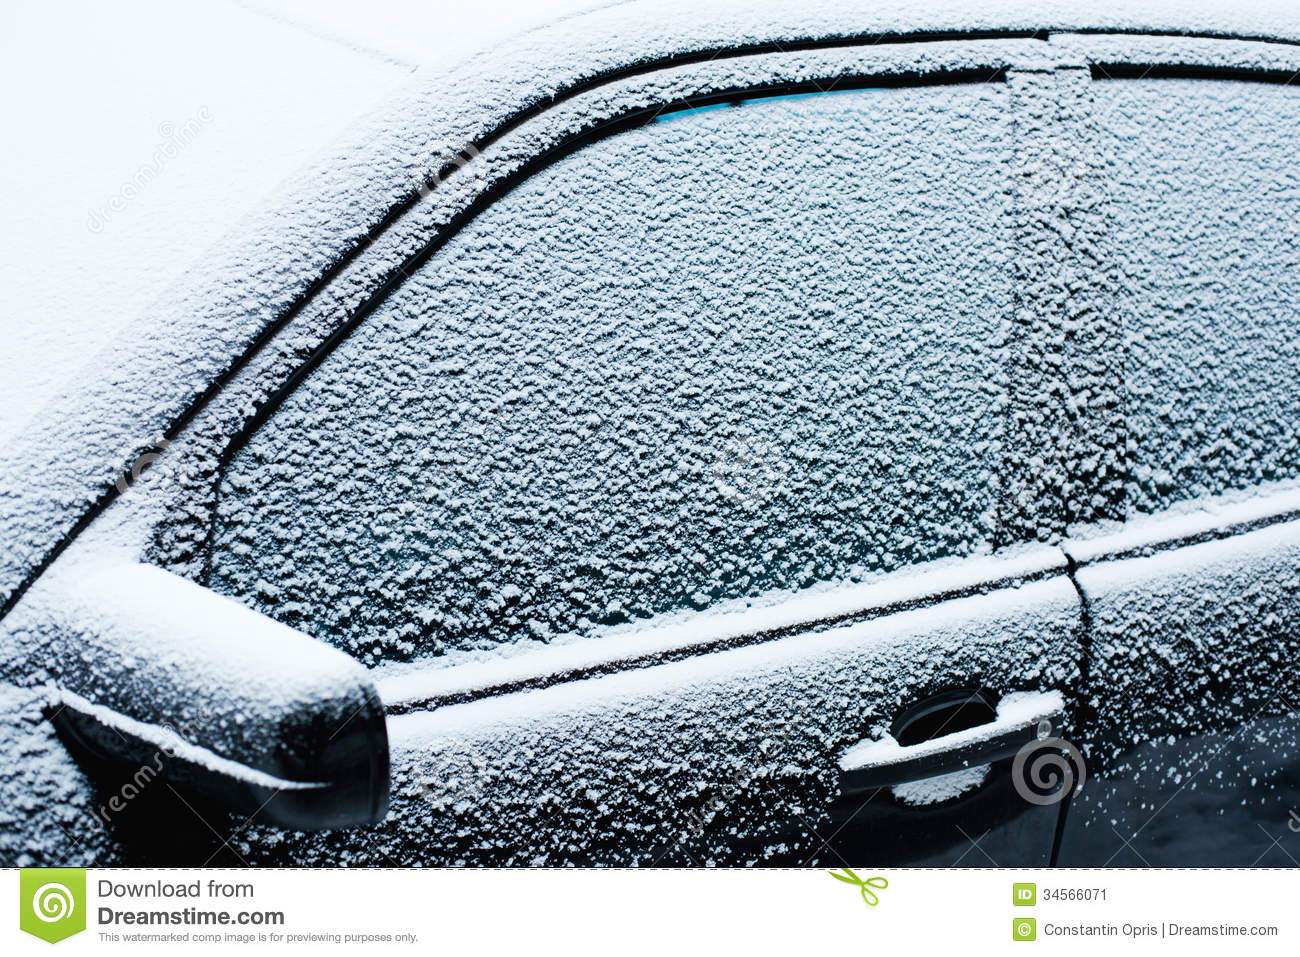 how to stop car windows from freezing up